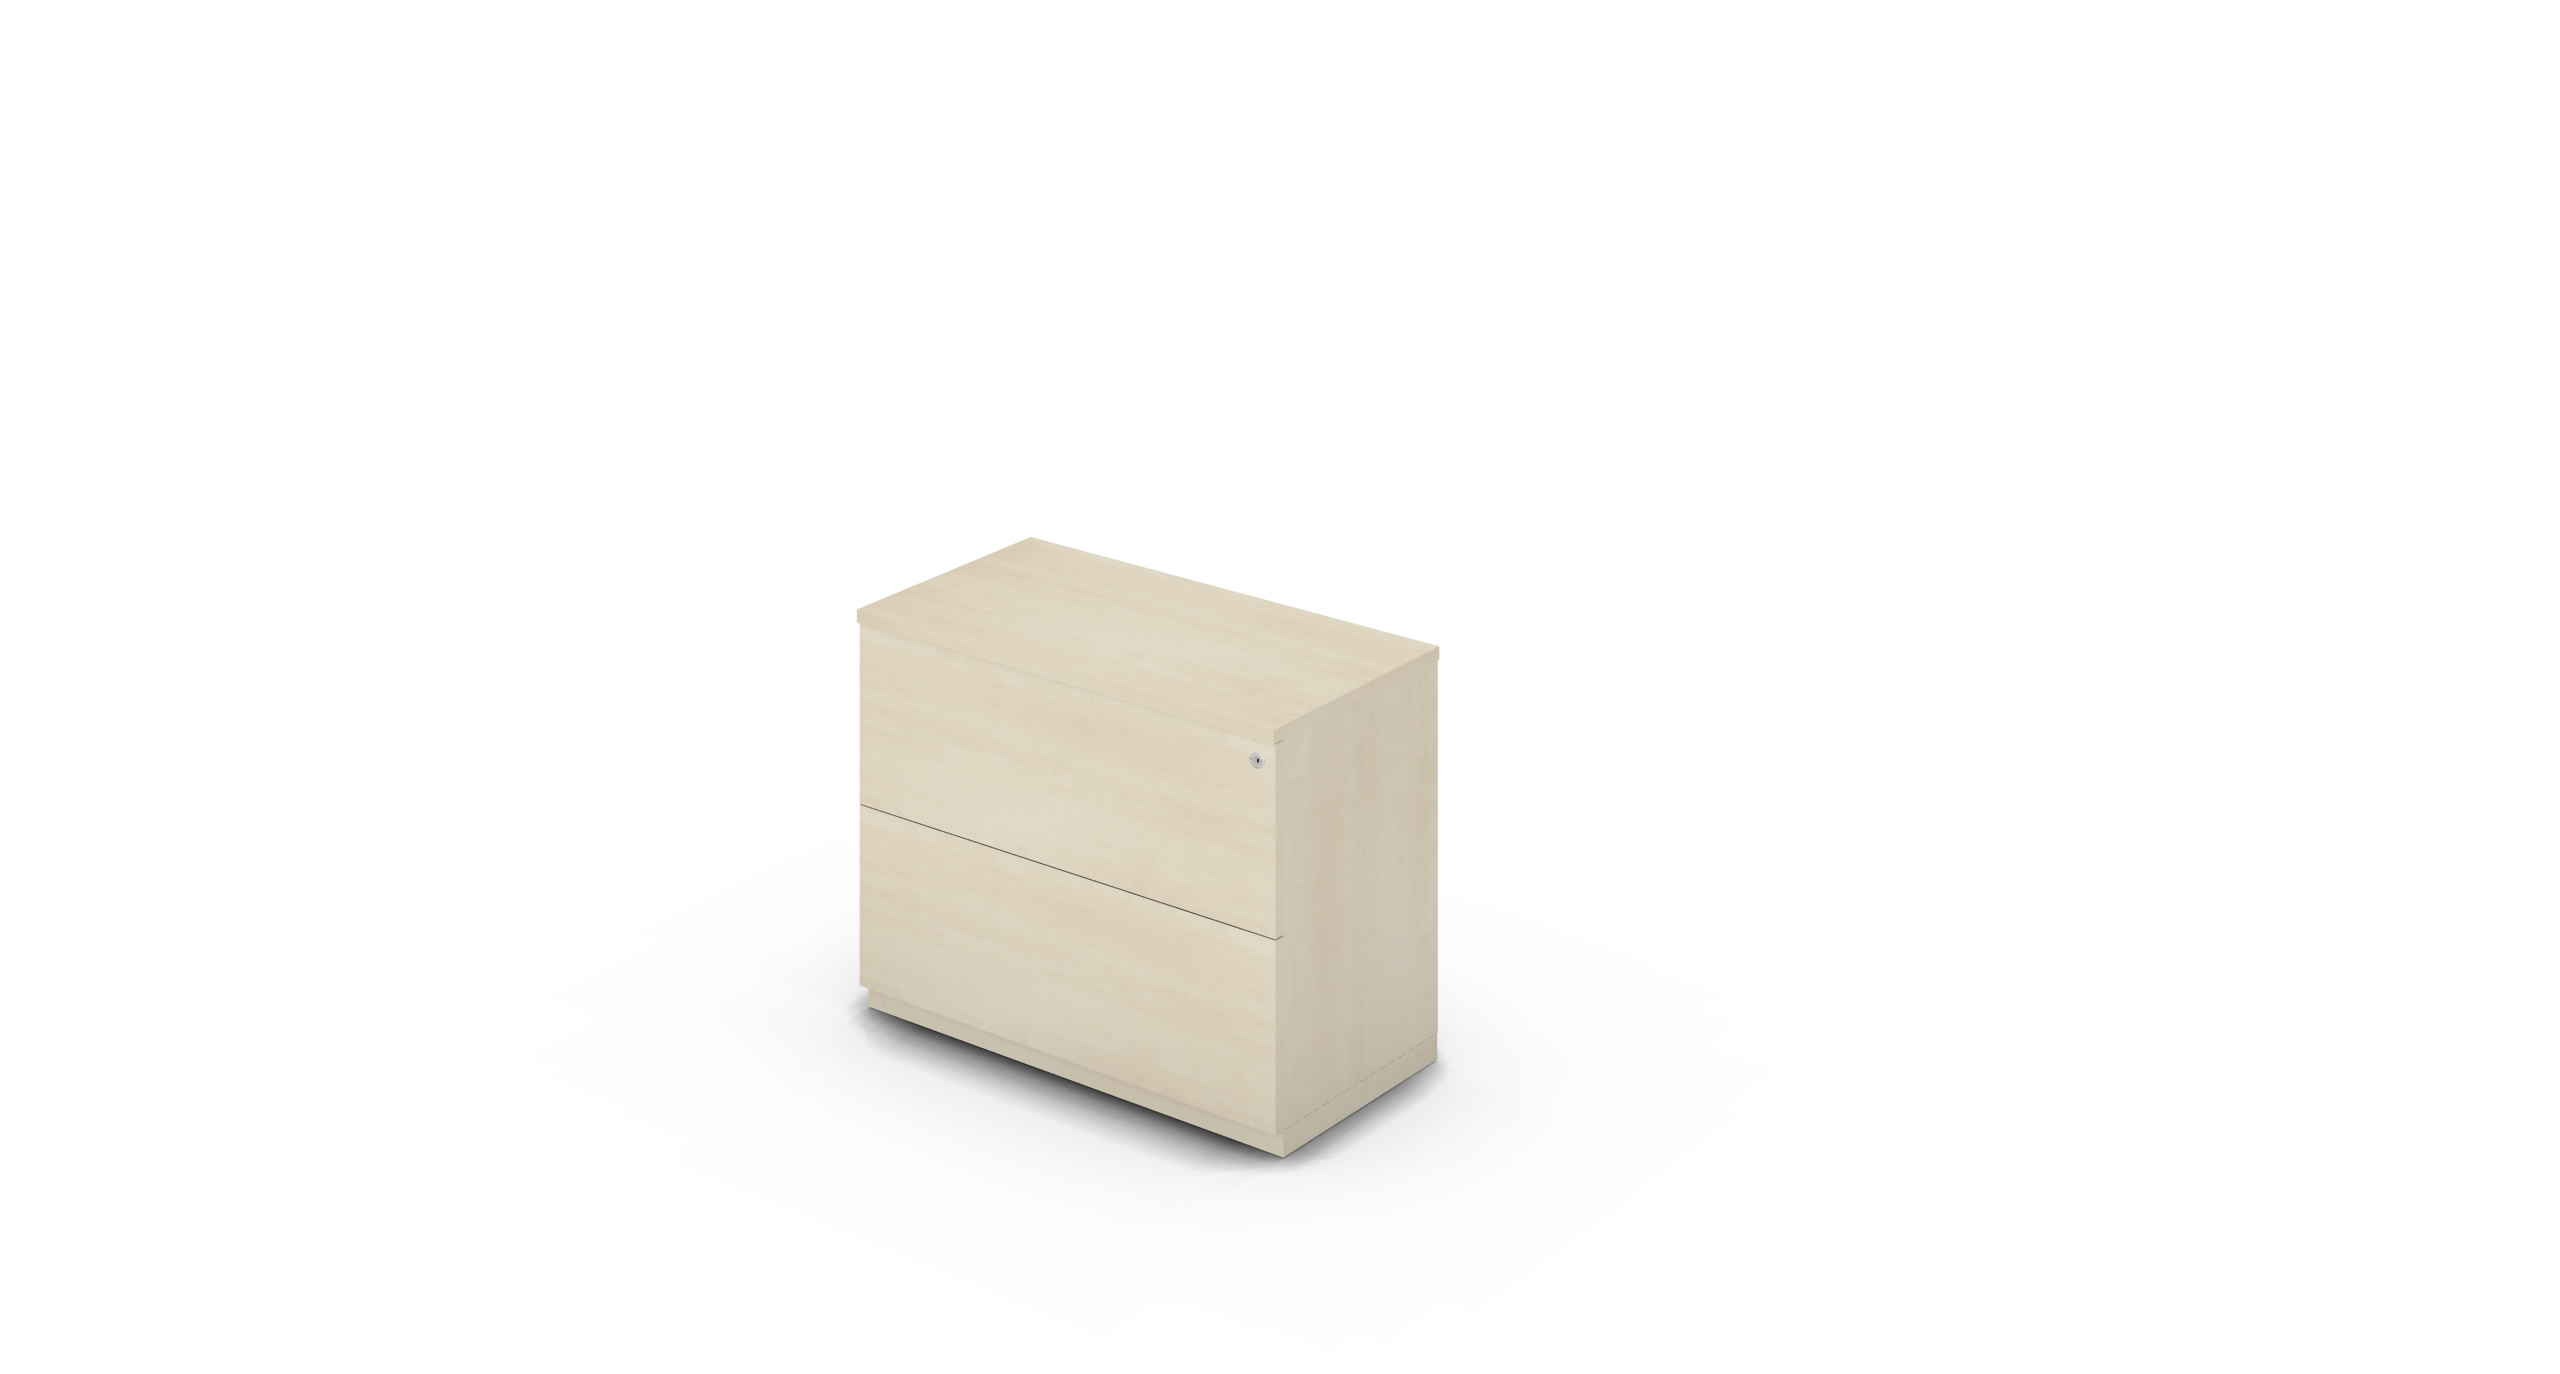 Cabinet_900x450x775_DR_Maple_Push_WithCylinder